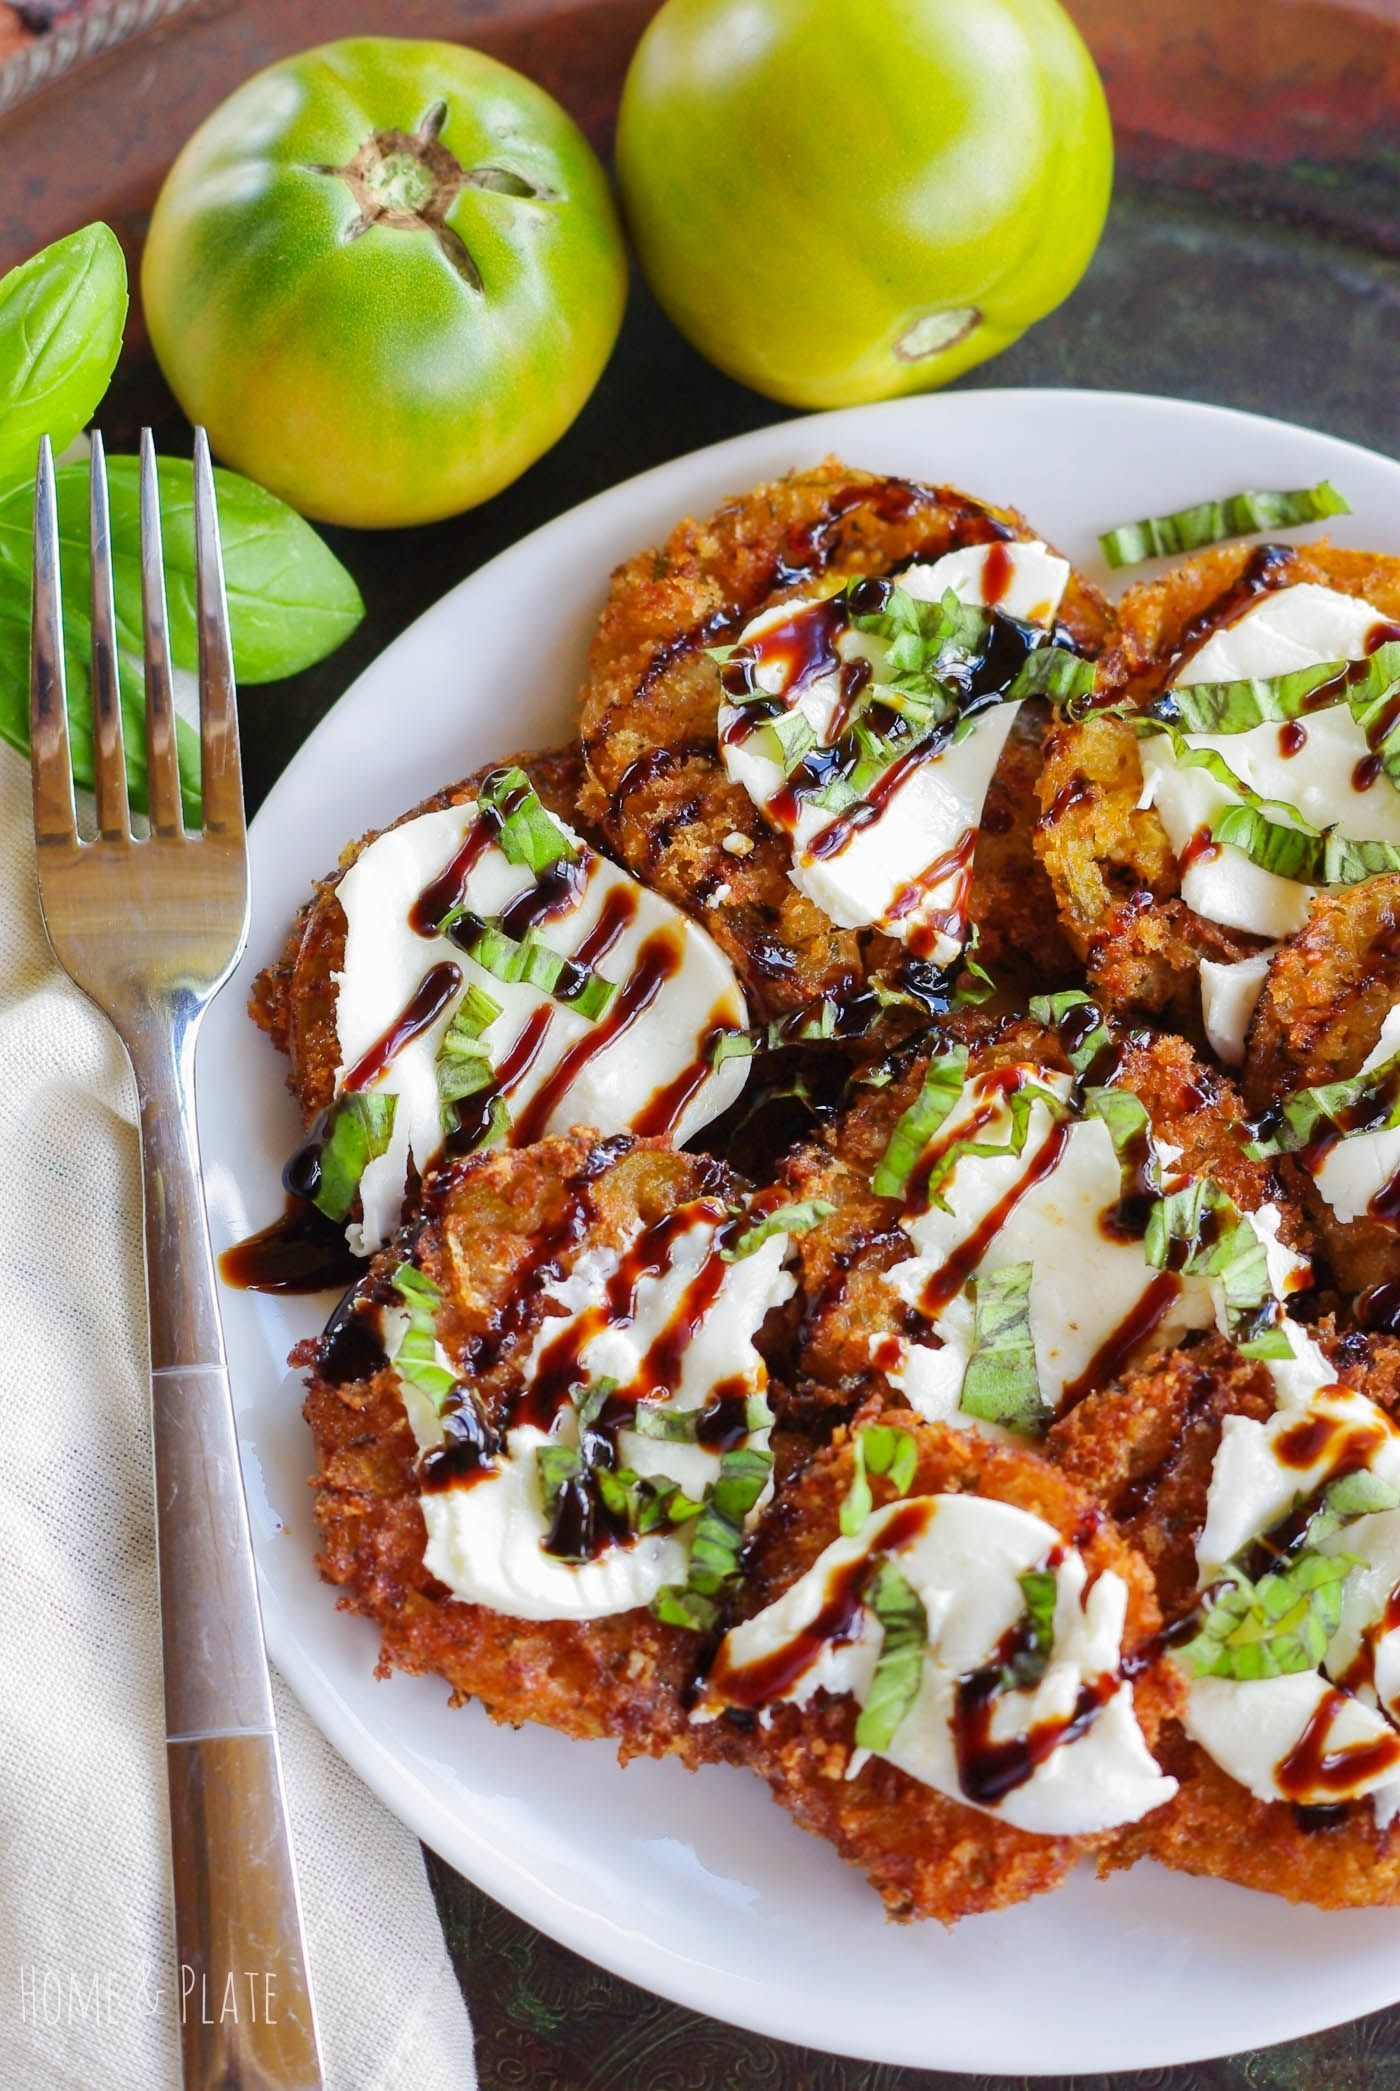 and Parmesan Crusted Fried Green Tomatoes Panko & Parmesan Crusted Fried Green Tomatoes |  | Don't throw away those unripe green tomatoes. Turn them into fried green tomatoes topped with fresh mozzarella cheese and chopped basil and finished with a balsamic glaze.Panko & Parmesan Crusted Fried Green Tomatoes |  | Don't throw away those unripe g...